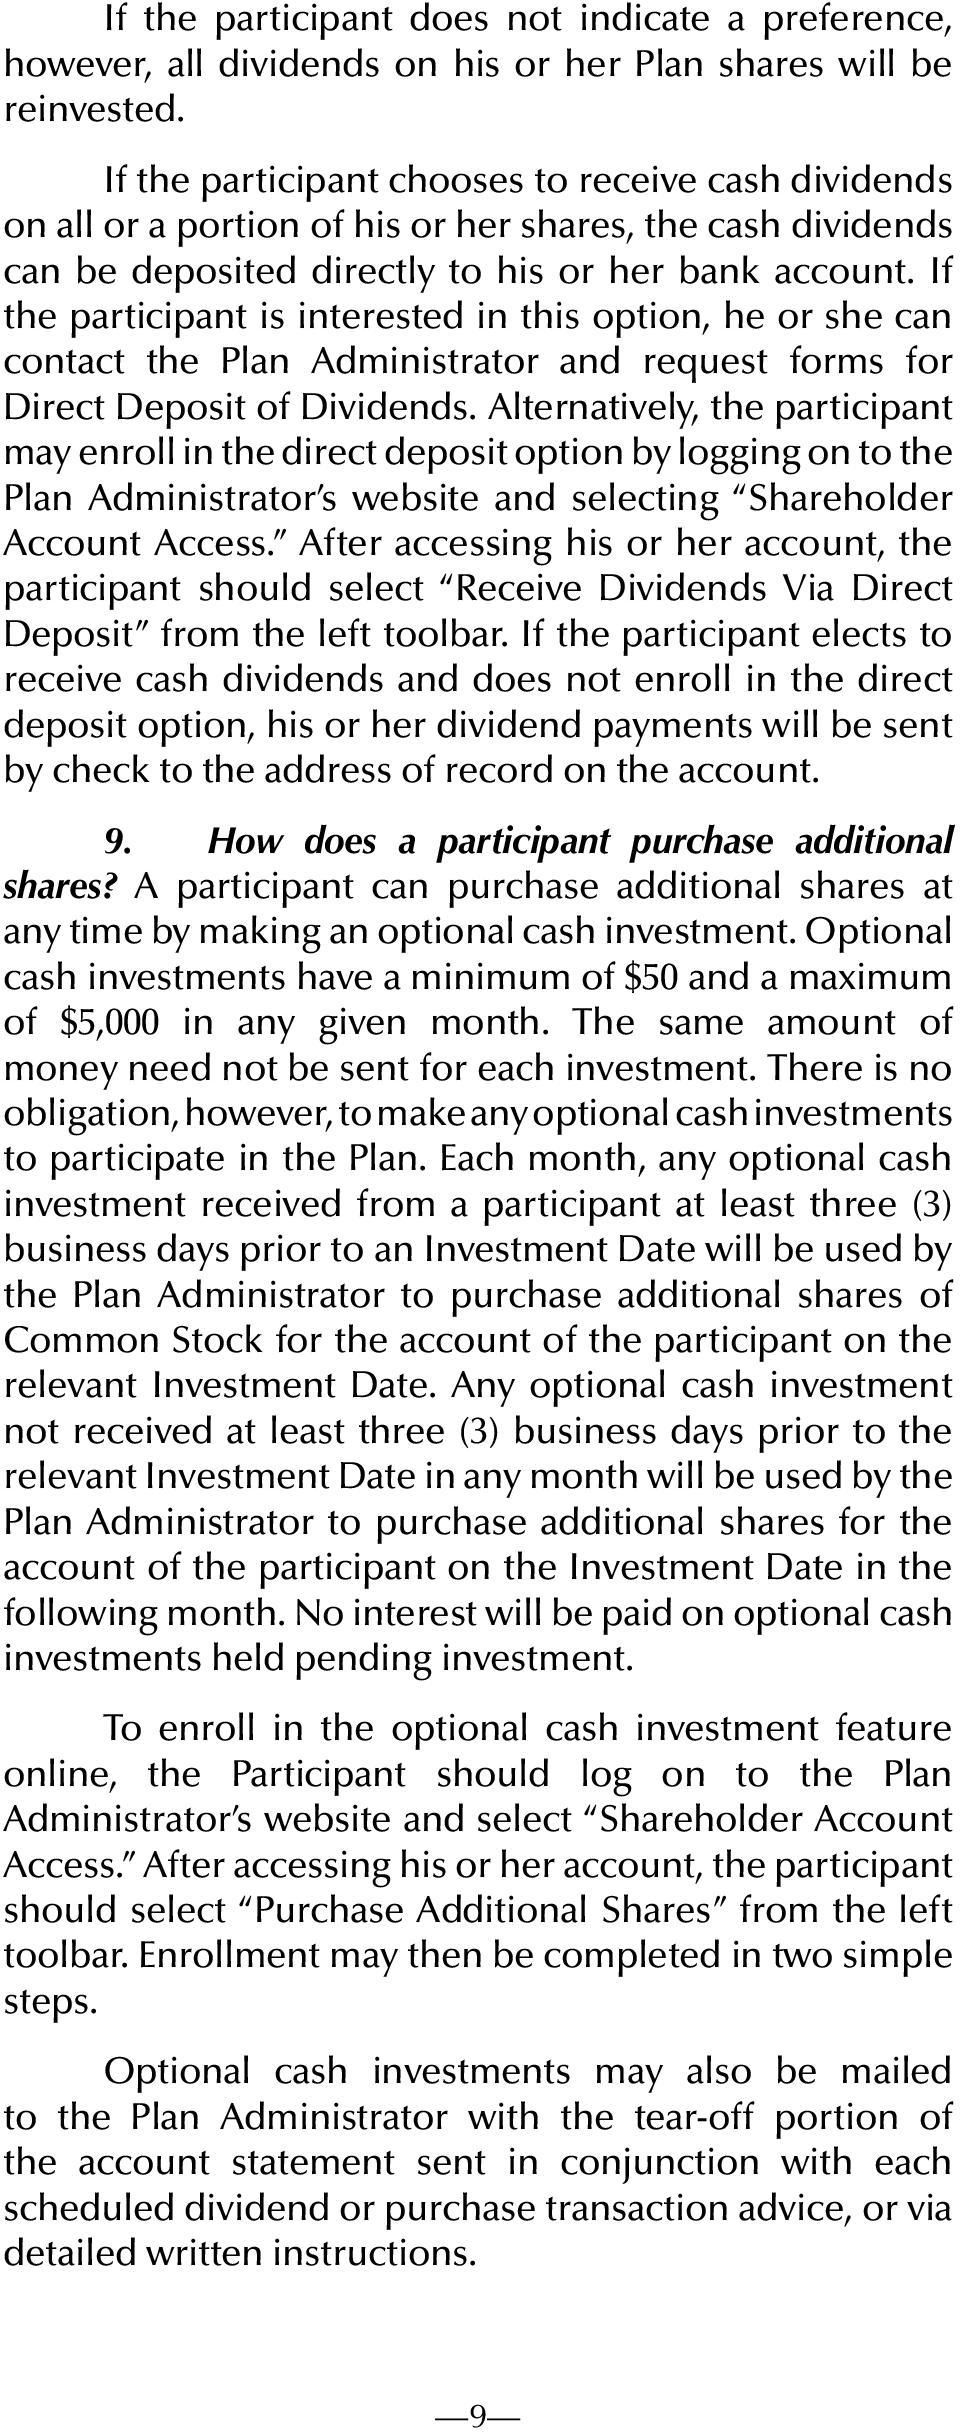 If the participant is interested in this option, he or she can contact the Plan Administrator and request forms for Direct Deposit of Dividends.